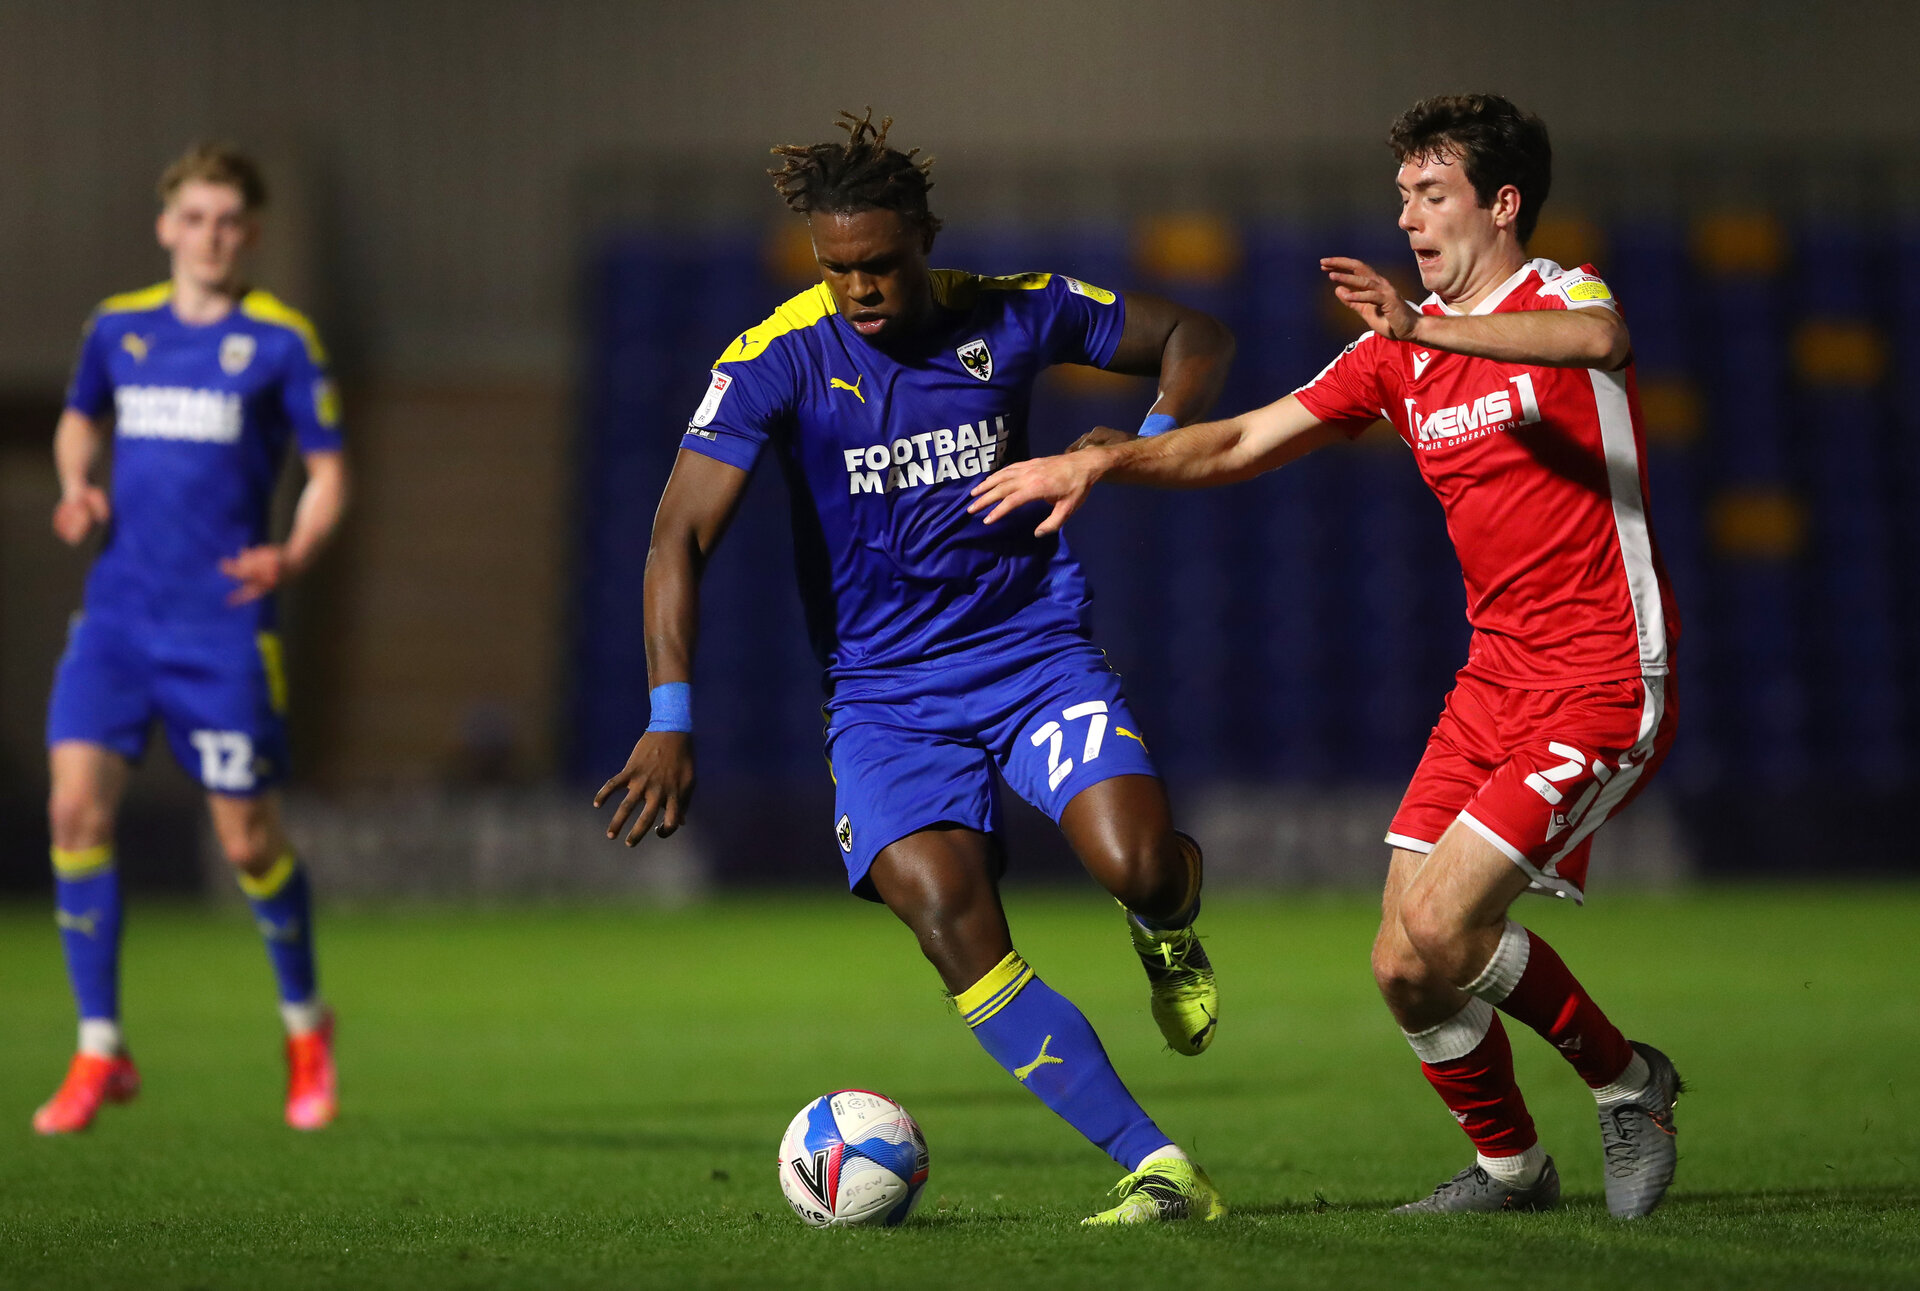 WIMBLEDON, ENGLAND - FEBRUARY 23:  Darnell Johnson of AFC Wimbledon holds off Thomas O'Connor of Gillingham FC during the Sky Bet League One match between AFC Wimbledon and Gillingham at Plough Lane on February 23, 2021 in Wimbledon, England. Sporting stadiums around the UK remain under strict restrictions due to the Coronavirus Pandemic as Government social distancing laws prohibit fans inside venues resulting in games being played behind closed doors. (Photo by Warren Little/Getty Images)